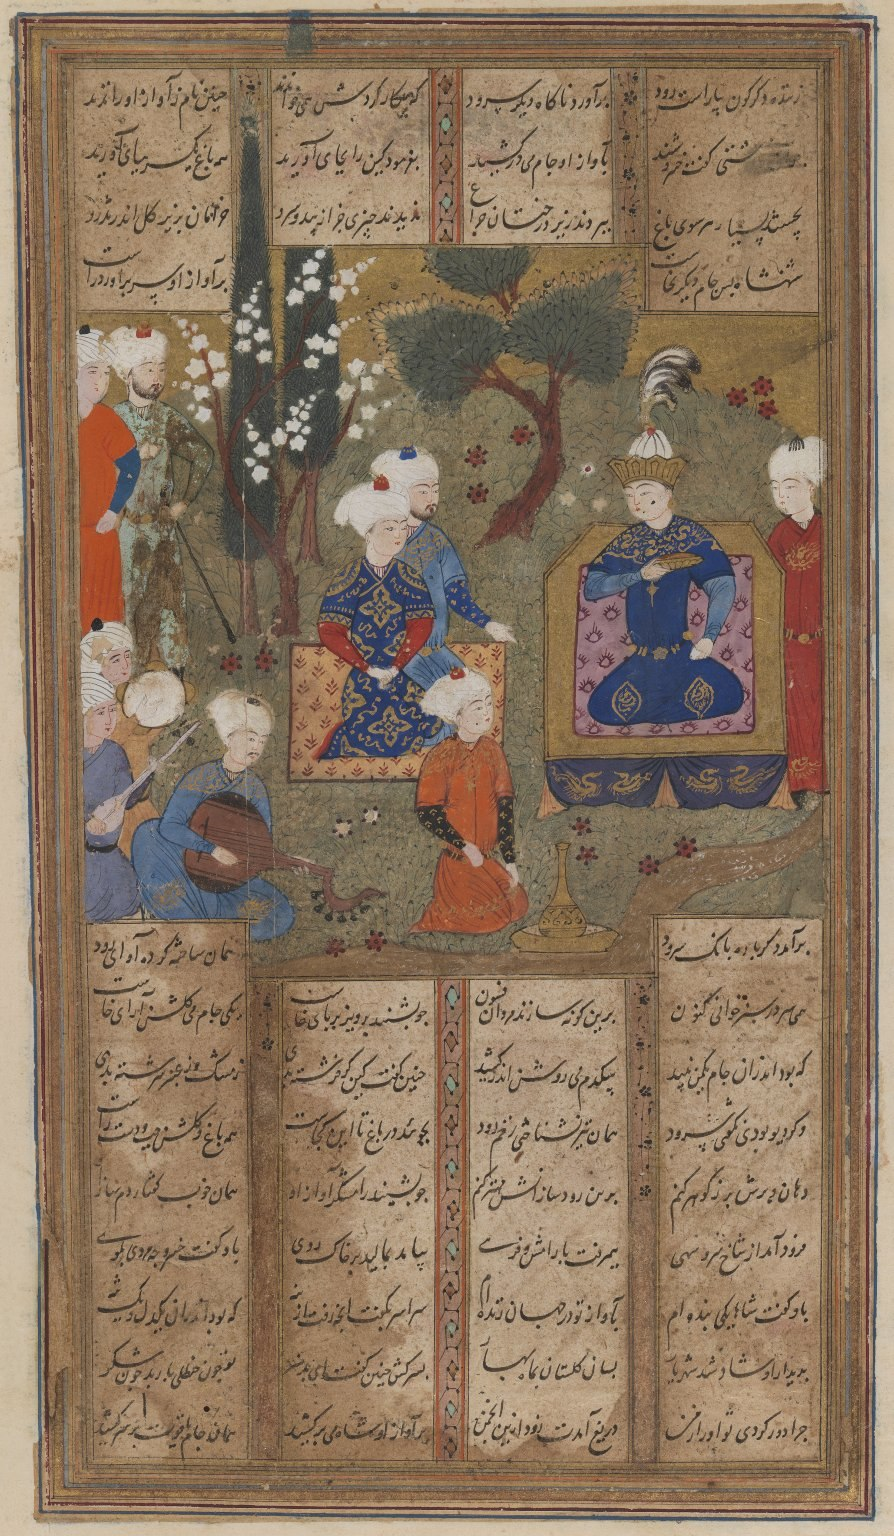 The Sasanian King Khusraw and Courtiers in a Garden, Page from a manuscript of the Shahnama (Book of Kings) of Firdawsi, late 15th-early 16th century